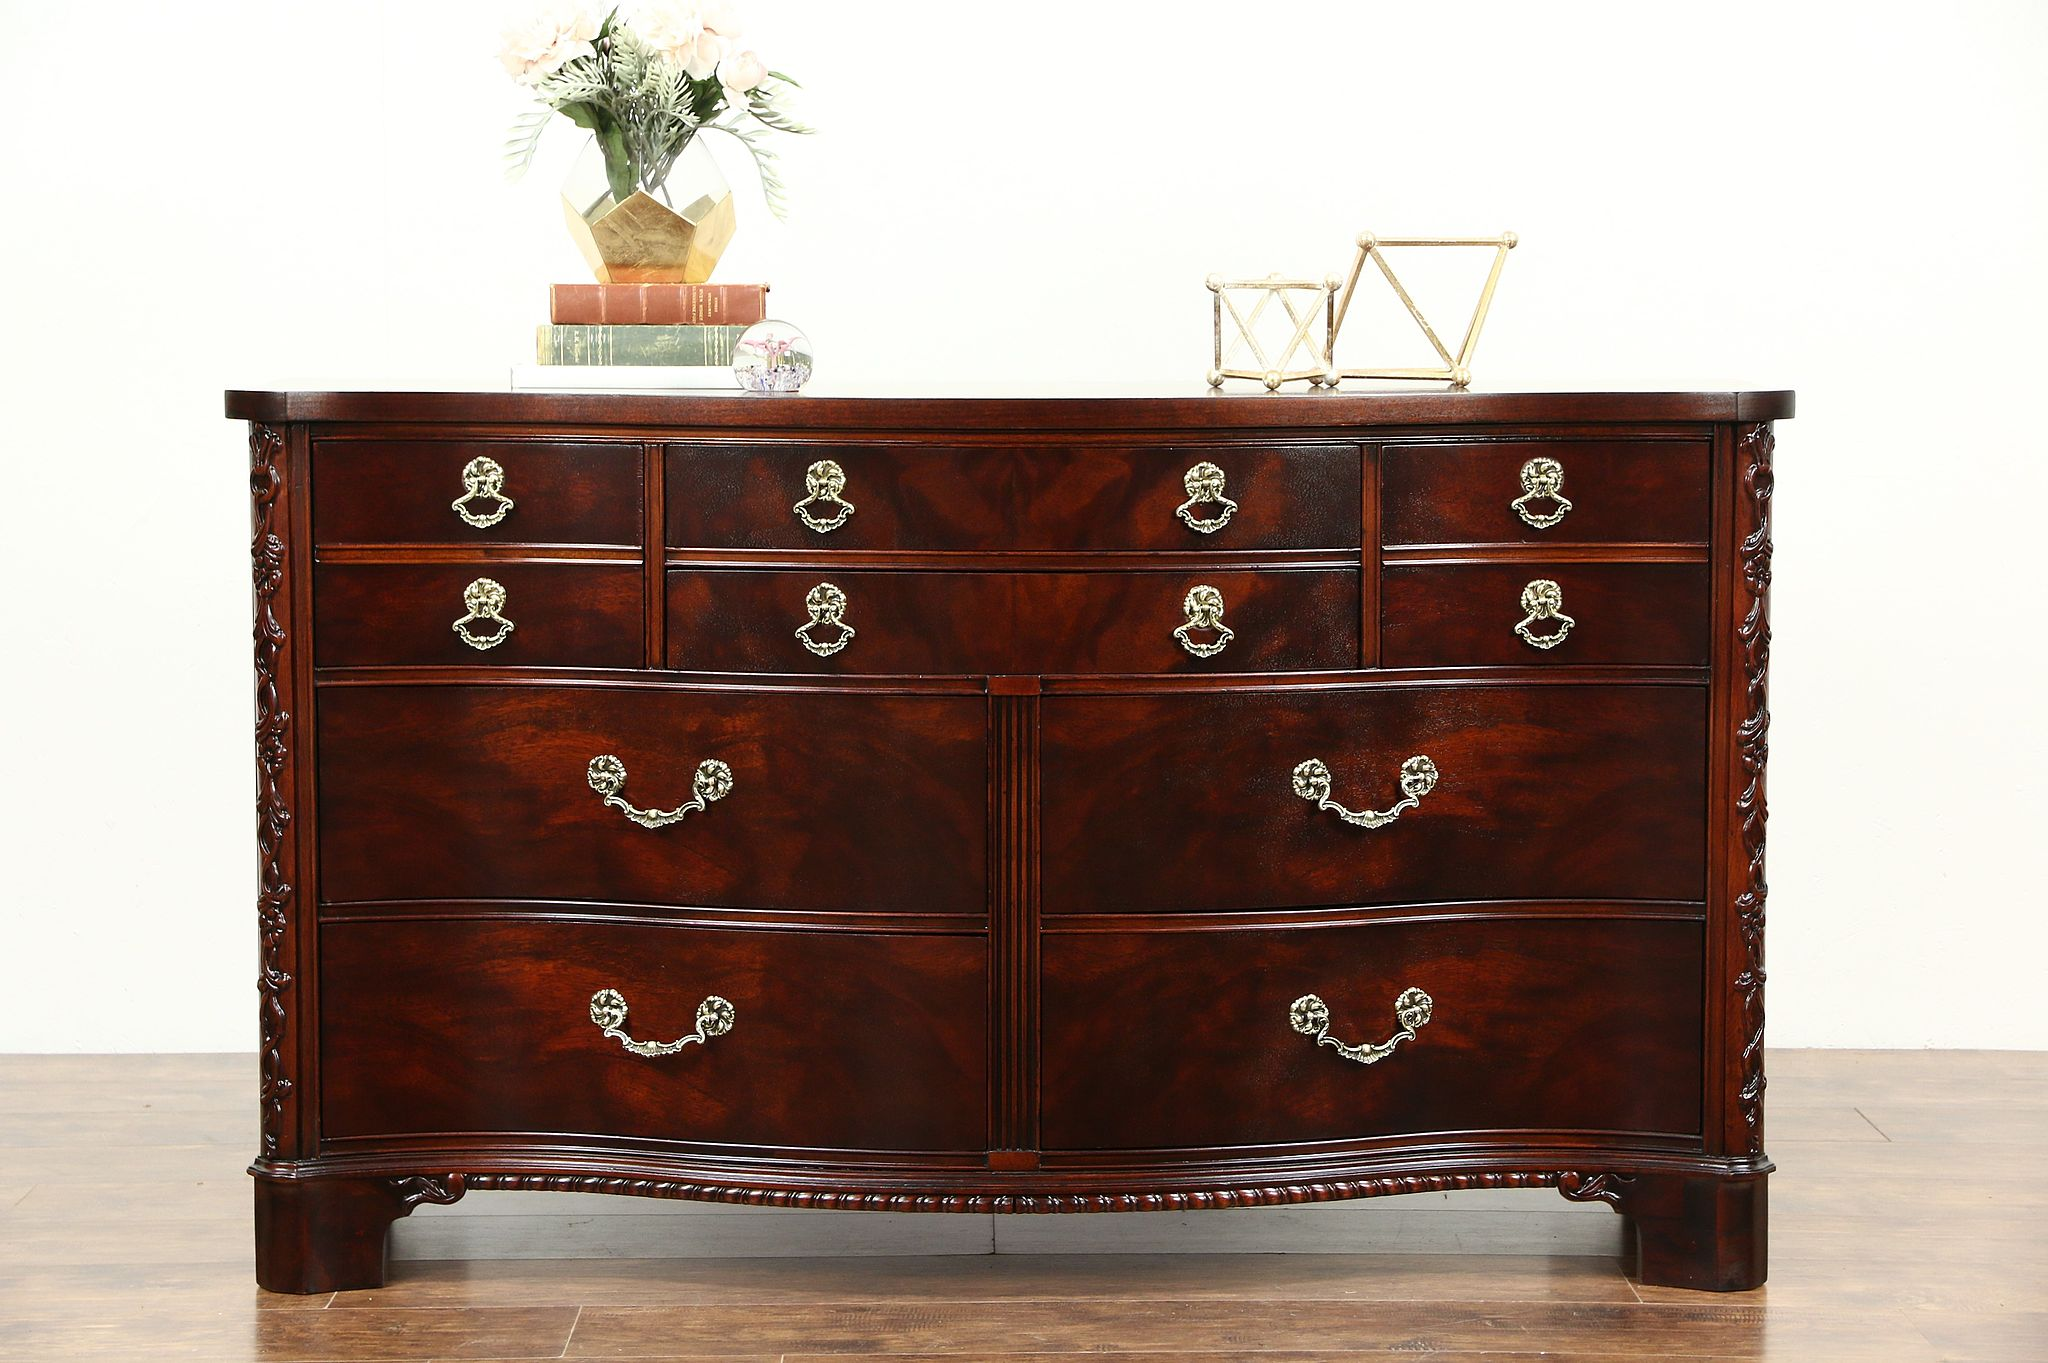 Picture of: Sold Century Signed Traditional Vintage Mahogany Dresser Or Linen Chest Harp Gallery Antiques Furniture